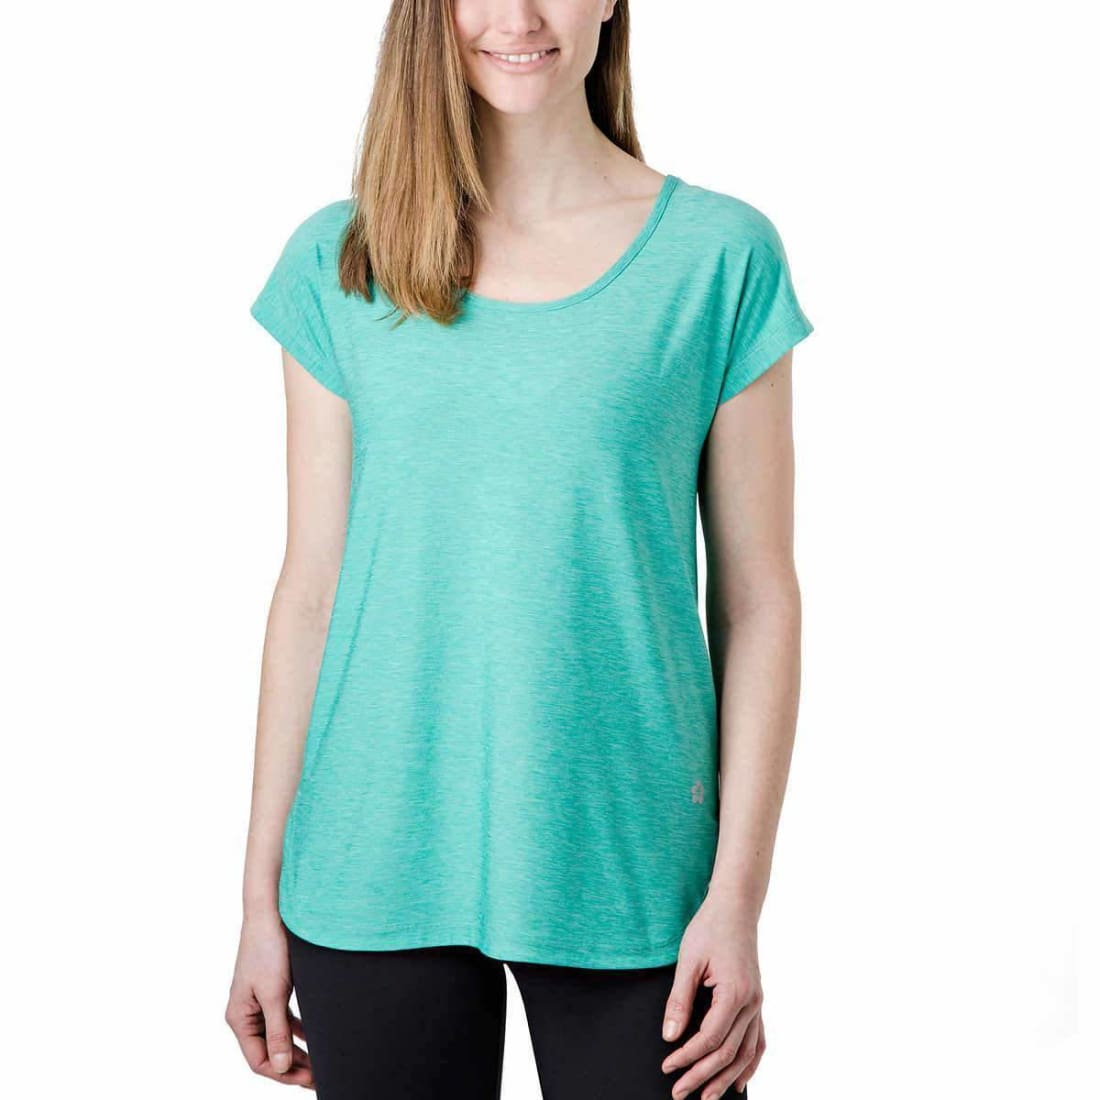 Tuff Athletics Womens Keyhole Tee Xs / Green Tops & Blouses